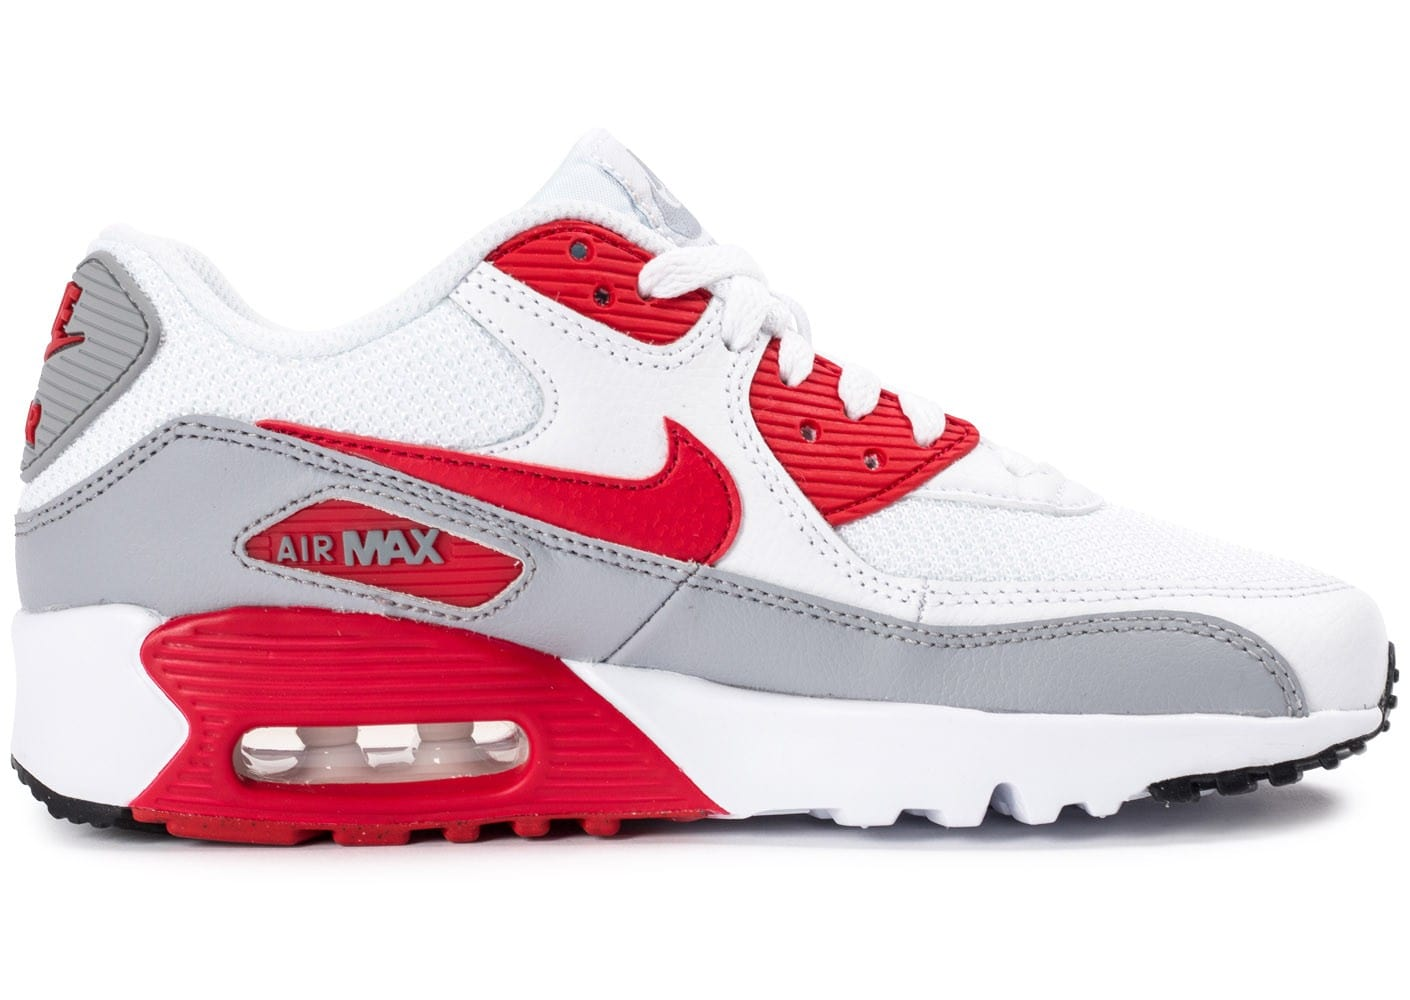 huge selection of 63069 6daac ... Chaussures Nike Air Max 90 Mesh Junior blanche et rouge vue dessous ...